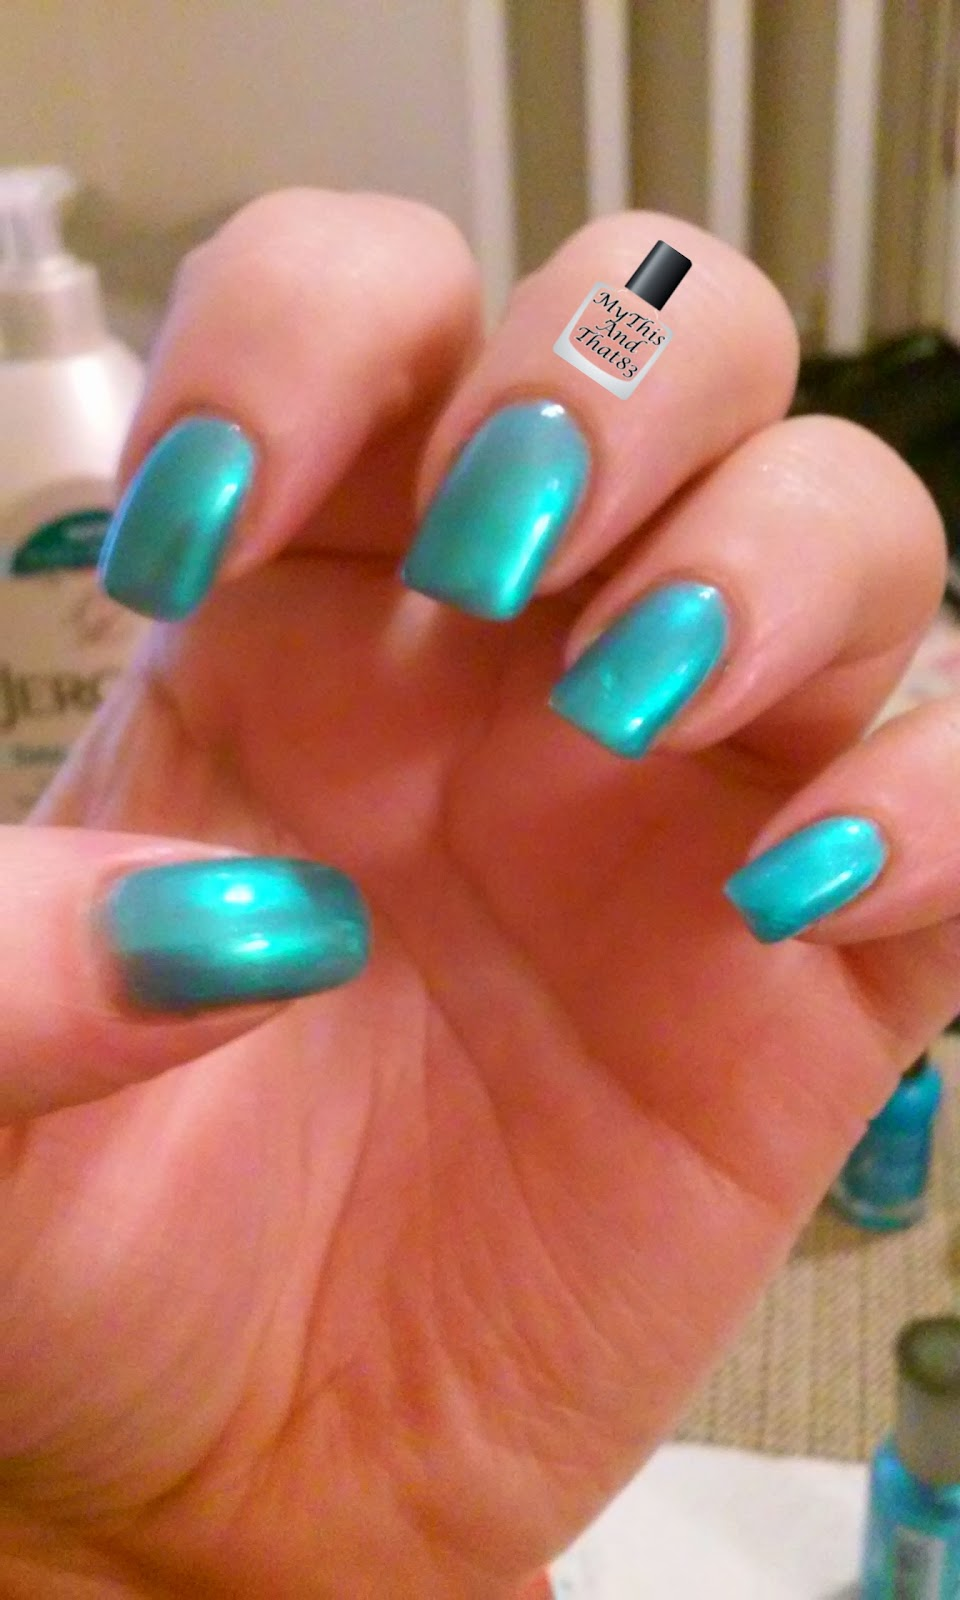 Sally Hansen 'Blizzard Blue'